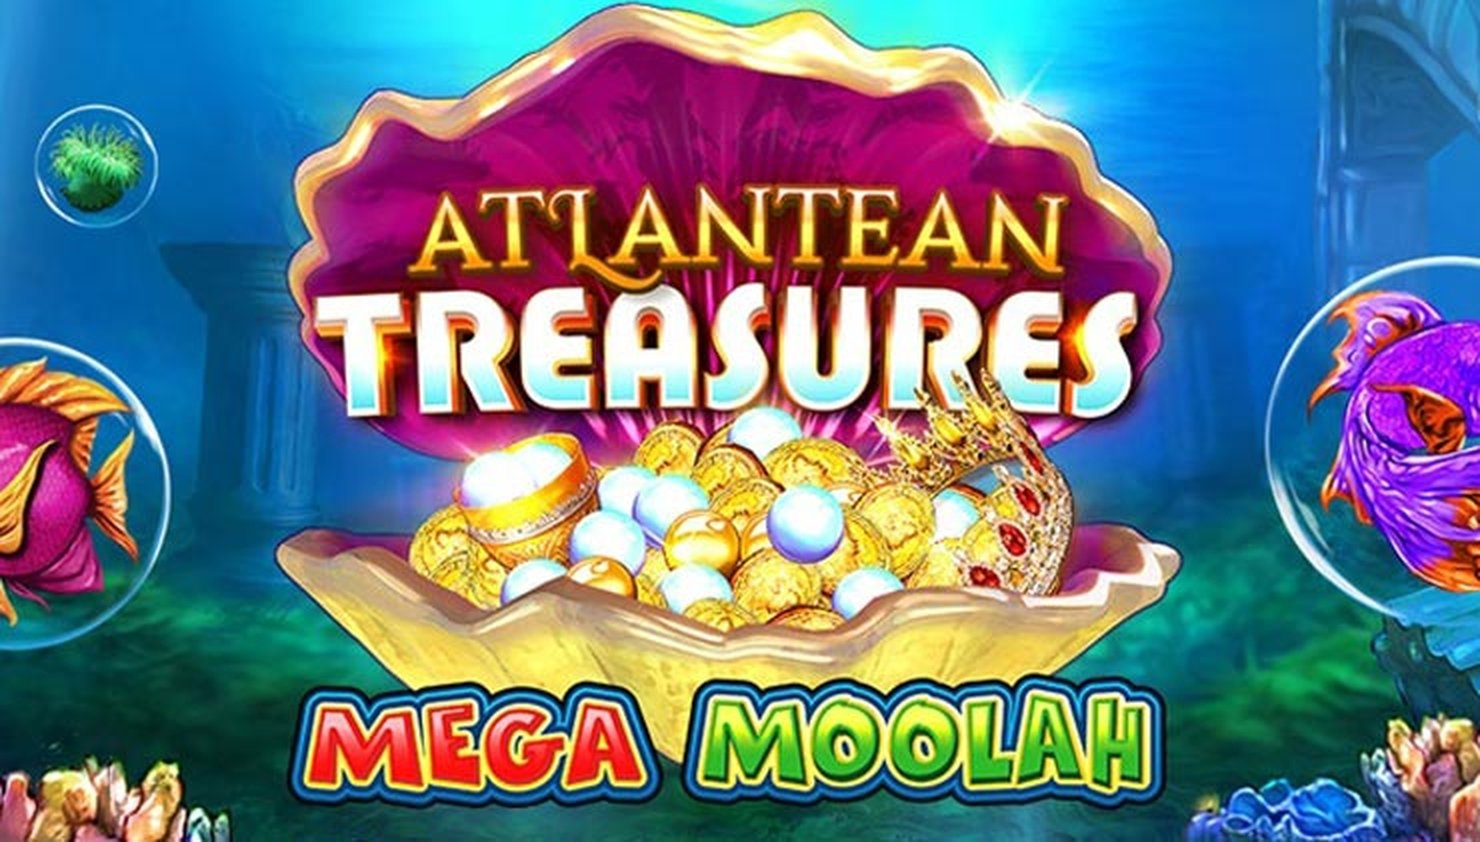 Atlantean Treasures Mega Moolah Online Slot Demo Game by Neon Valley Studios